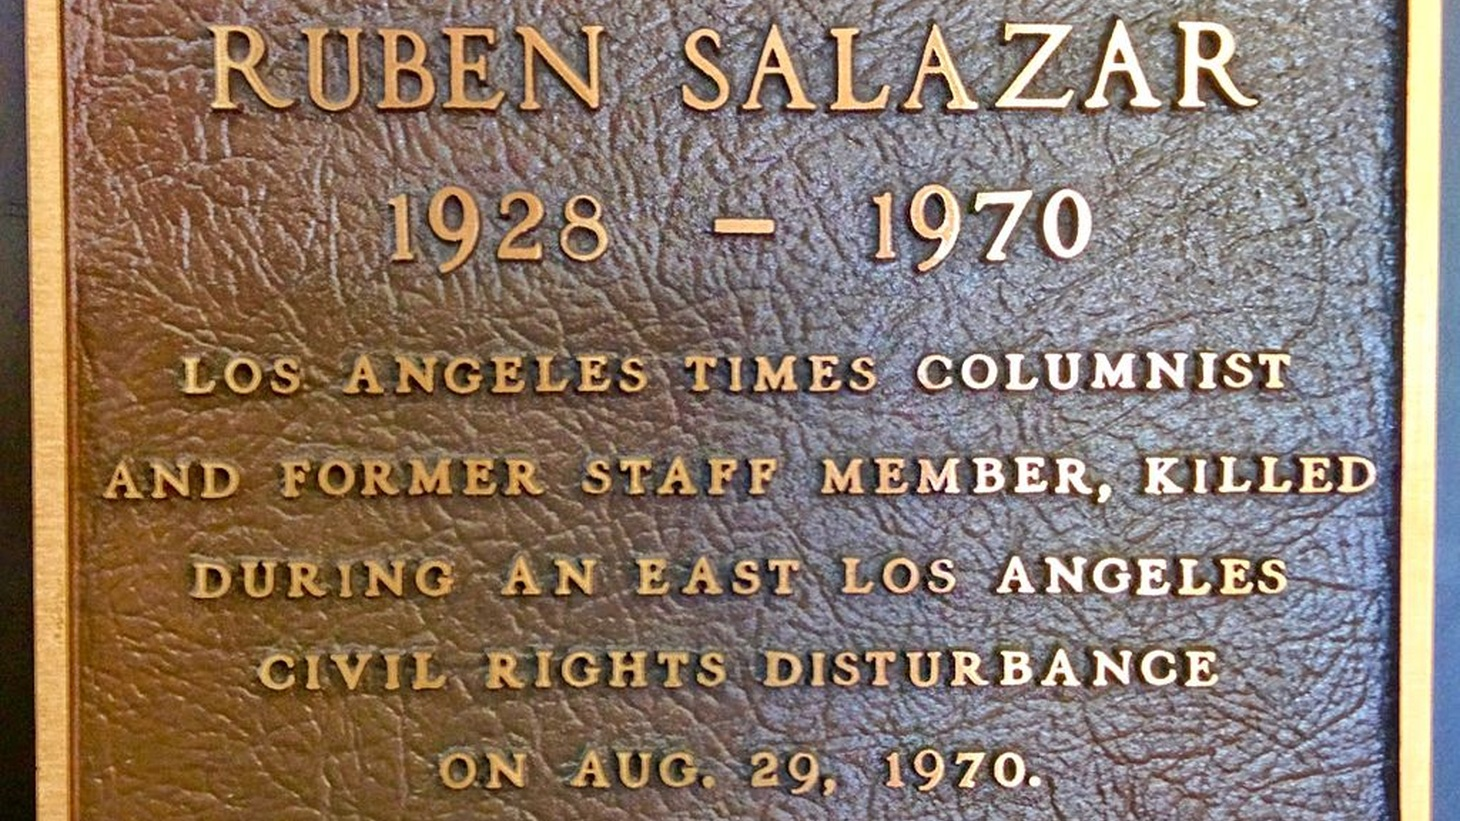 A plaque honoring the late journalist Rubén Salazar was mounted in the globe lobby of the Los Angeles Times' old building in downtown Los Angeles.